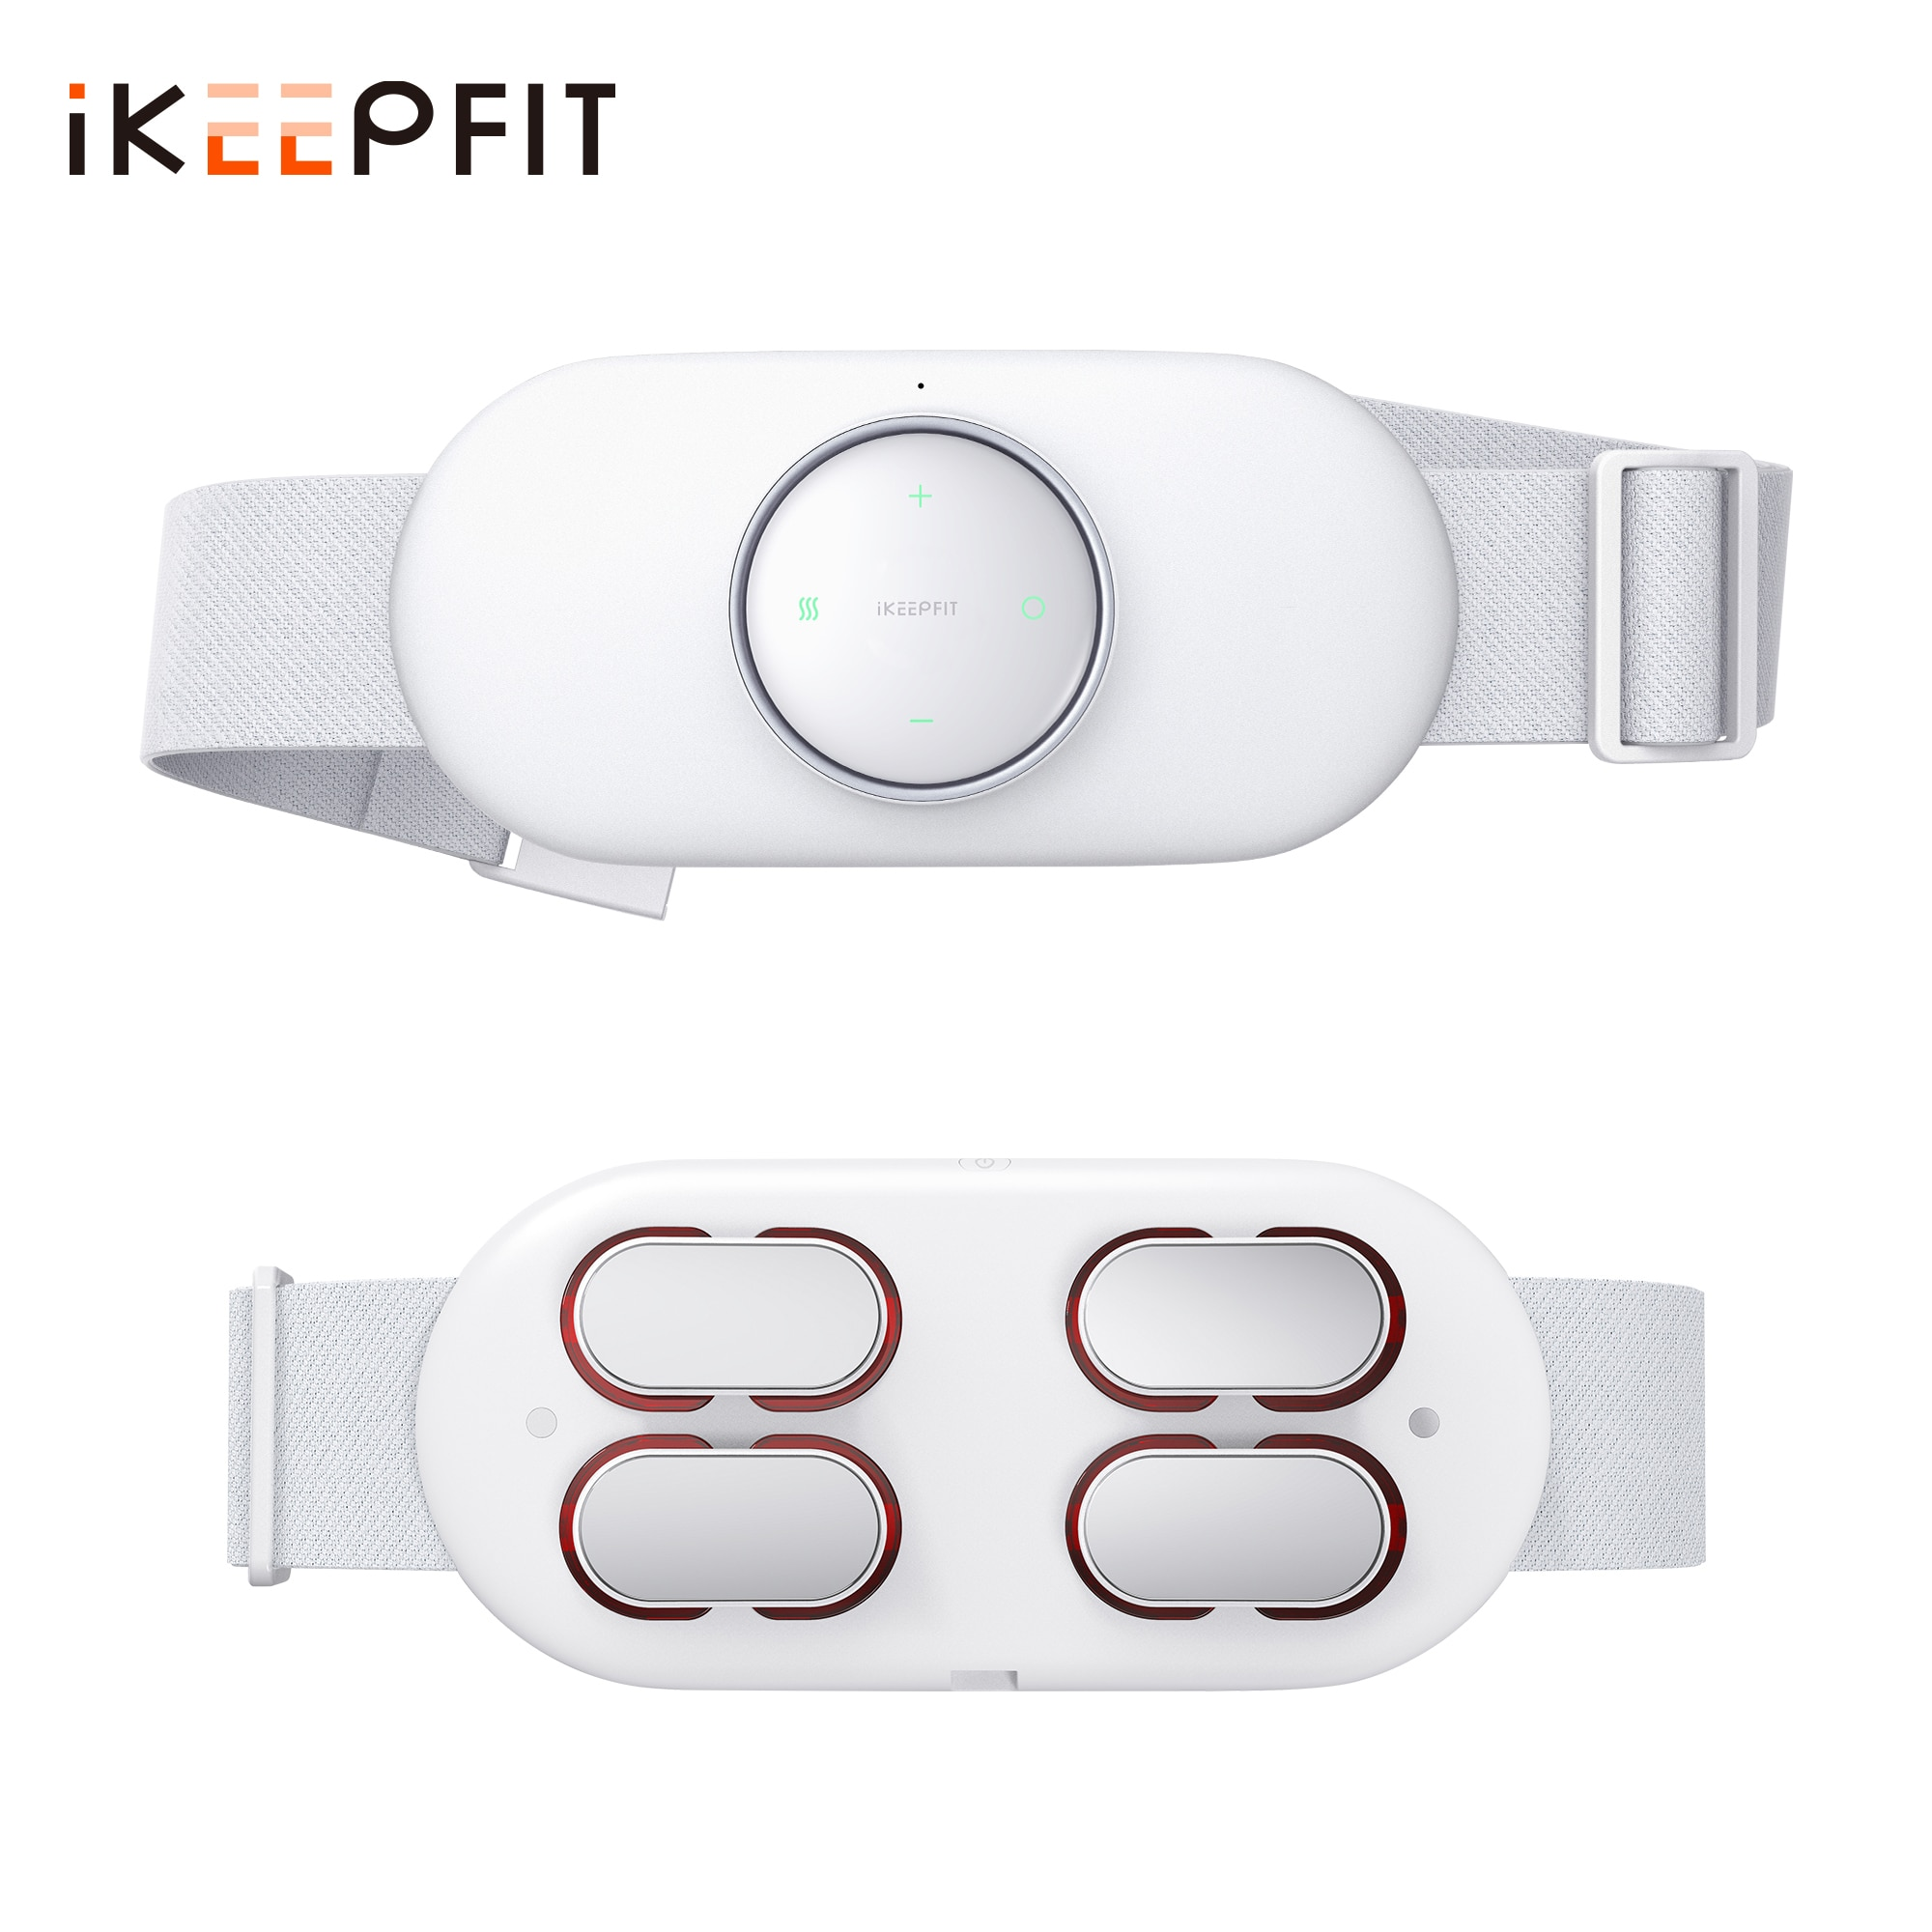 ikeepfit-smart-wireless-waist-massager-electric-lumbar-abdominal-massage-heating-low-frequency-pulsed-infrared-light-relief-pain